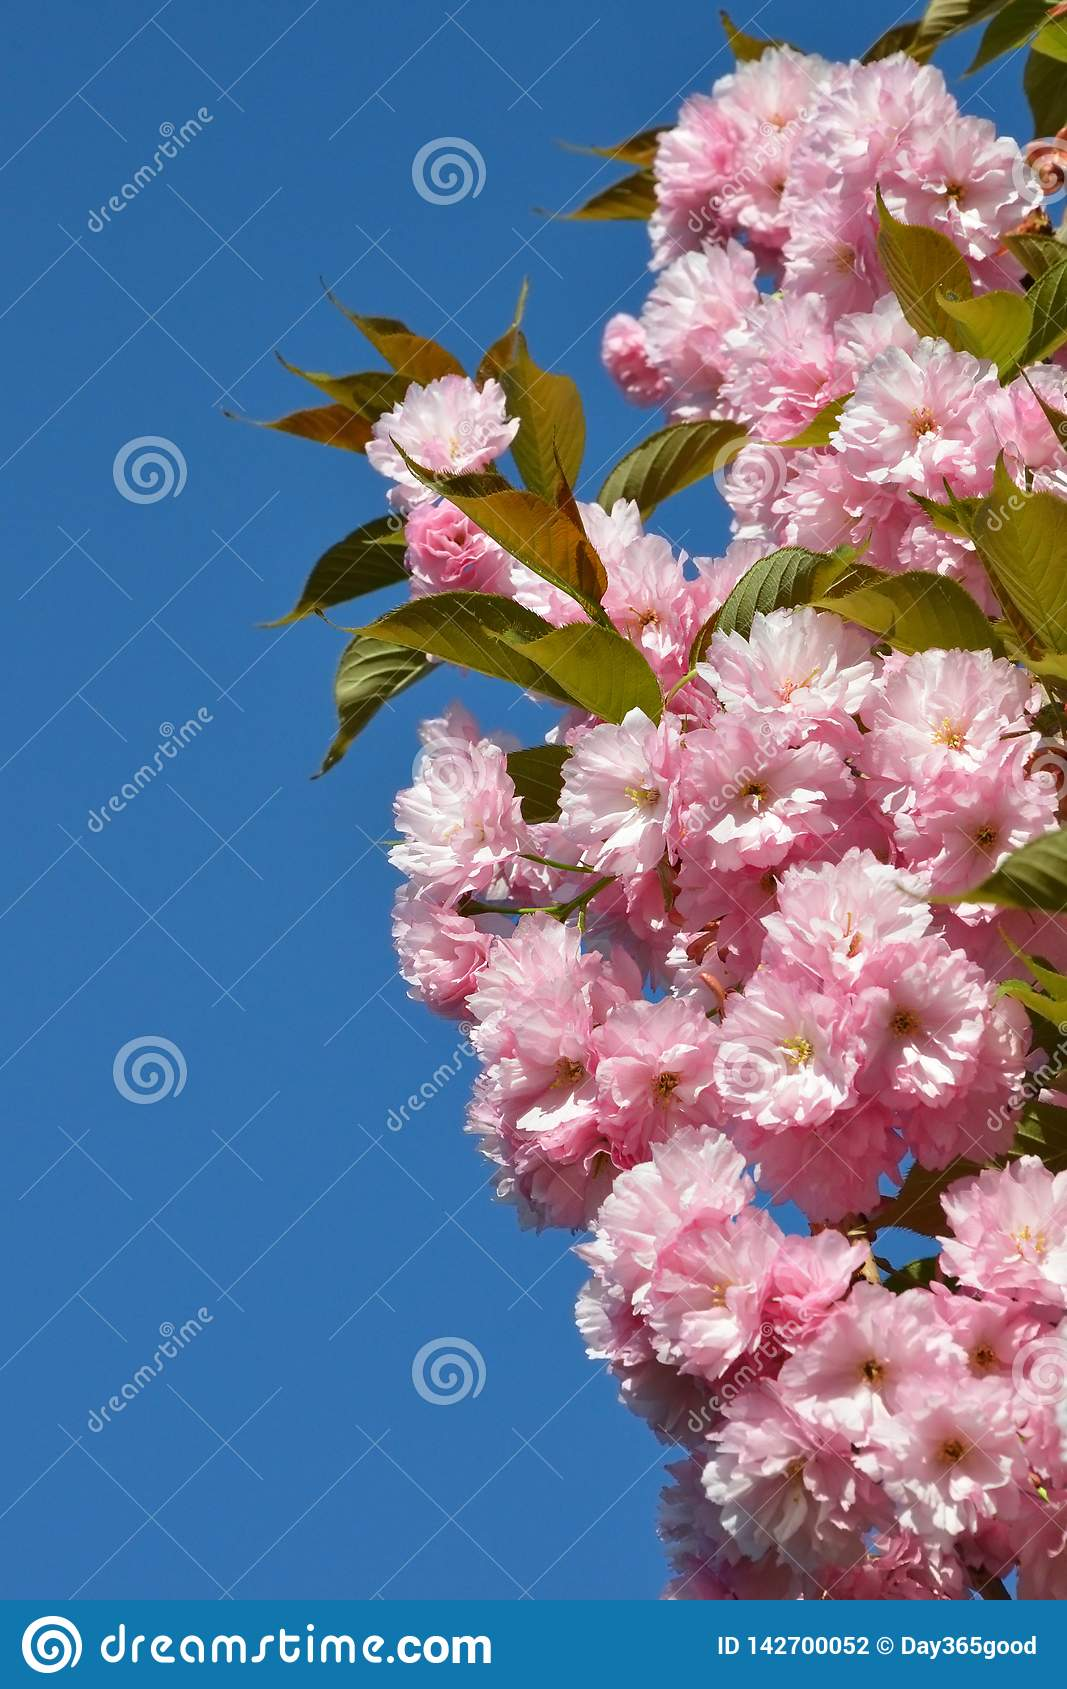 Branch of pink cherry blossoms against the blue sky. Flowering garden. Spring  bloom